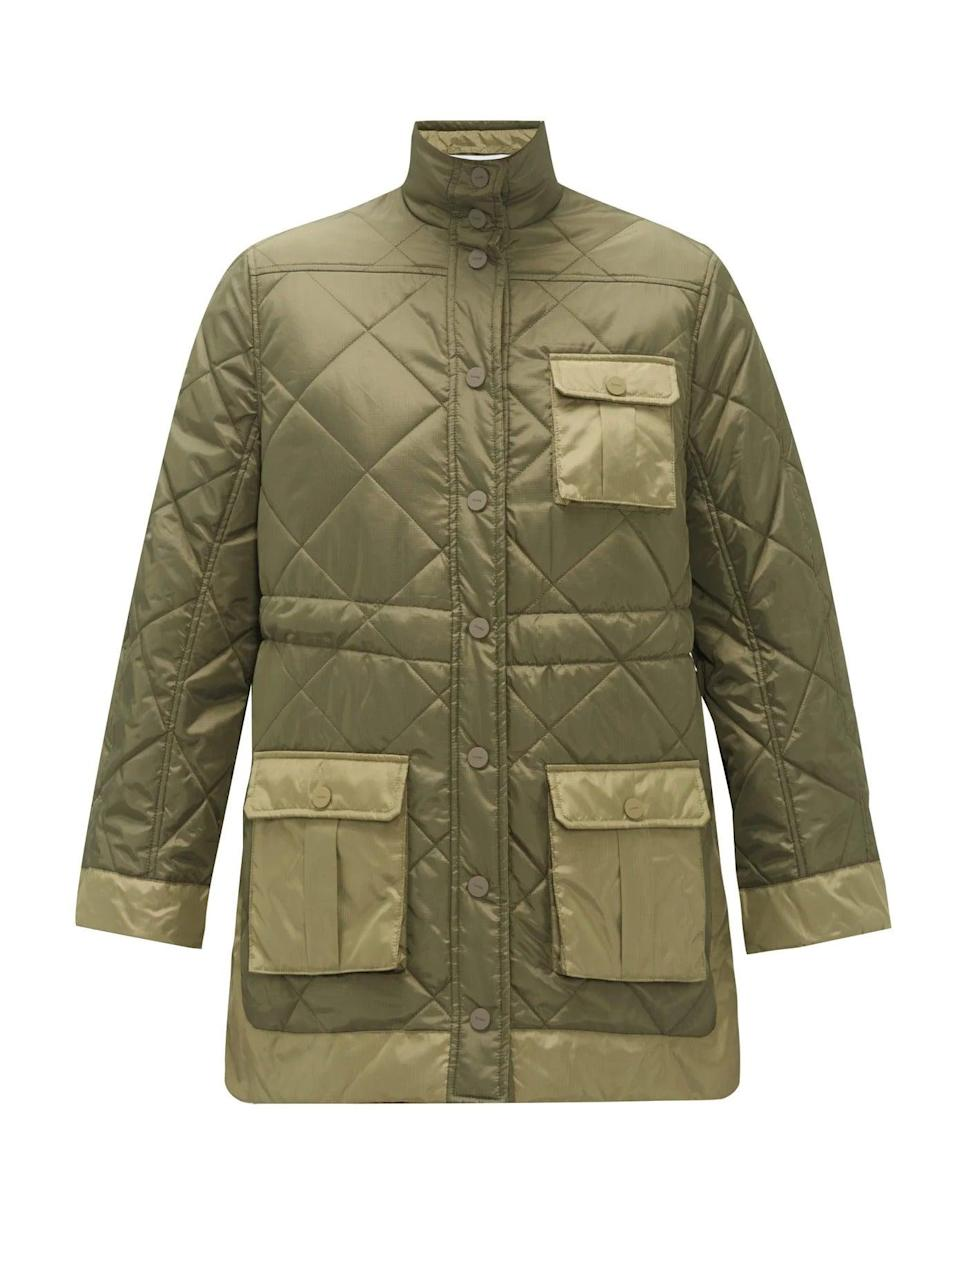 """<br><br><strong>Ganni</strong> Quilted Recycled-Ripstop Jacket, $, available at <a href=""""https://www.matchesfashion.com/products/Ganni-Quilted-recycled-ripstop-jacket-1341666"""" rel=""""nofollow noopener"""" target=""""_blank"""" data-ylk=""""slk:Matches Fashion"""" class=""""link rapid-noclick-resp"""">Matches Fashion</a>"""